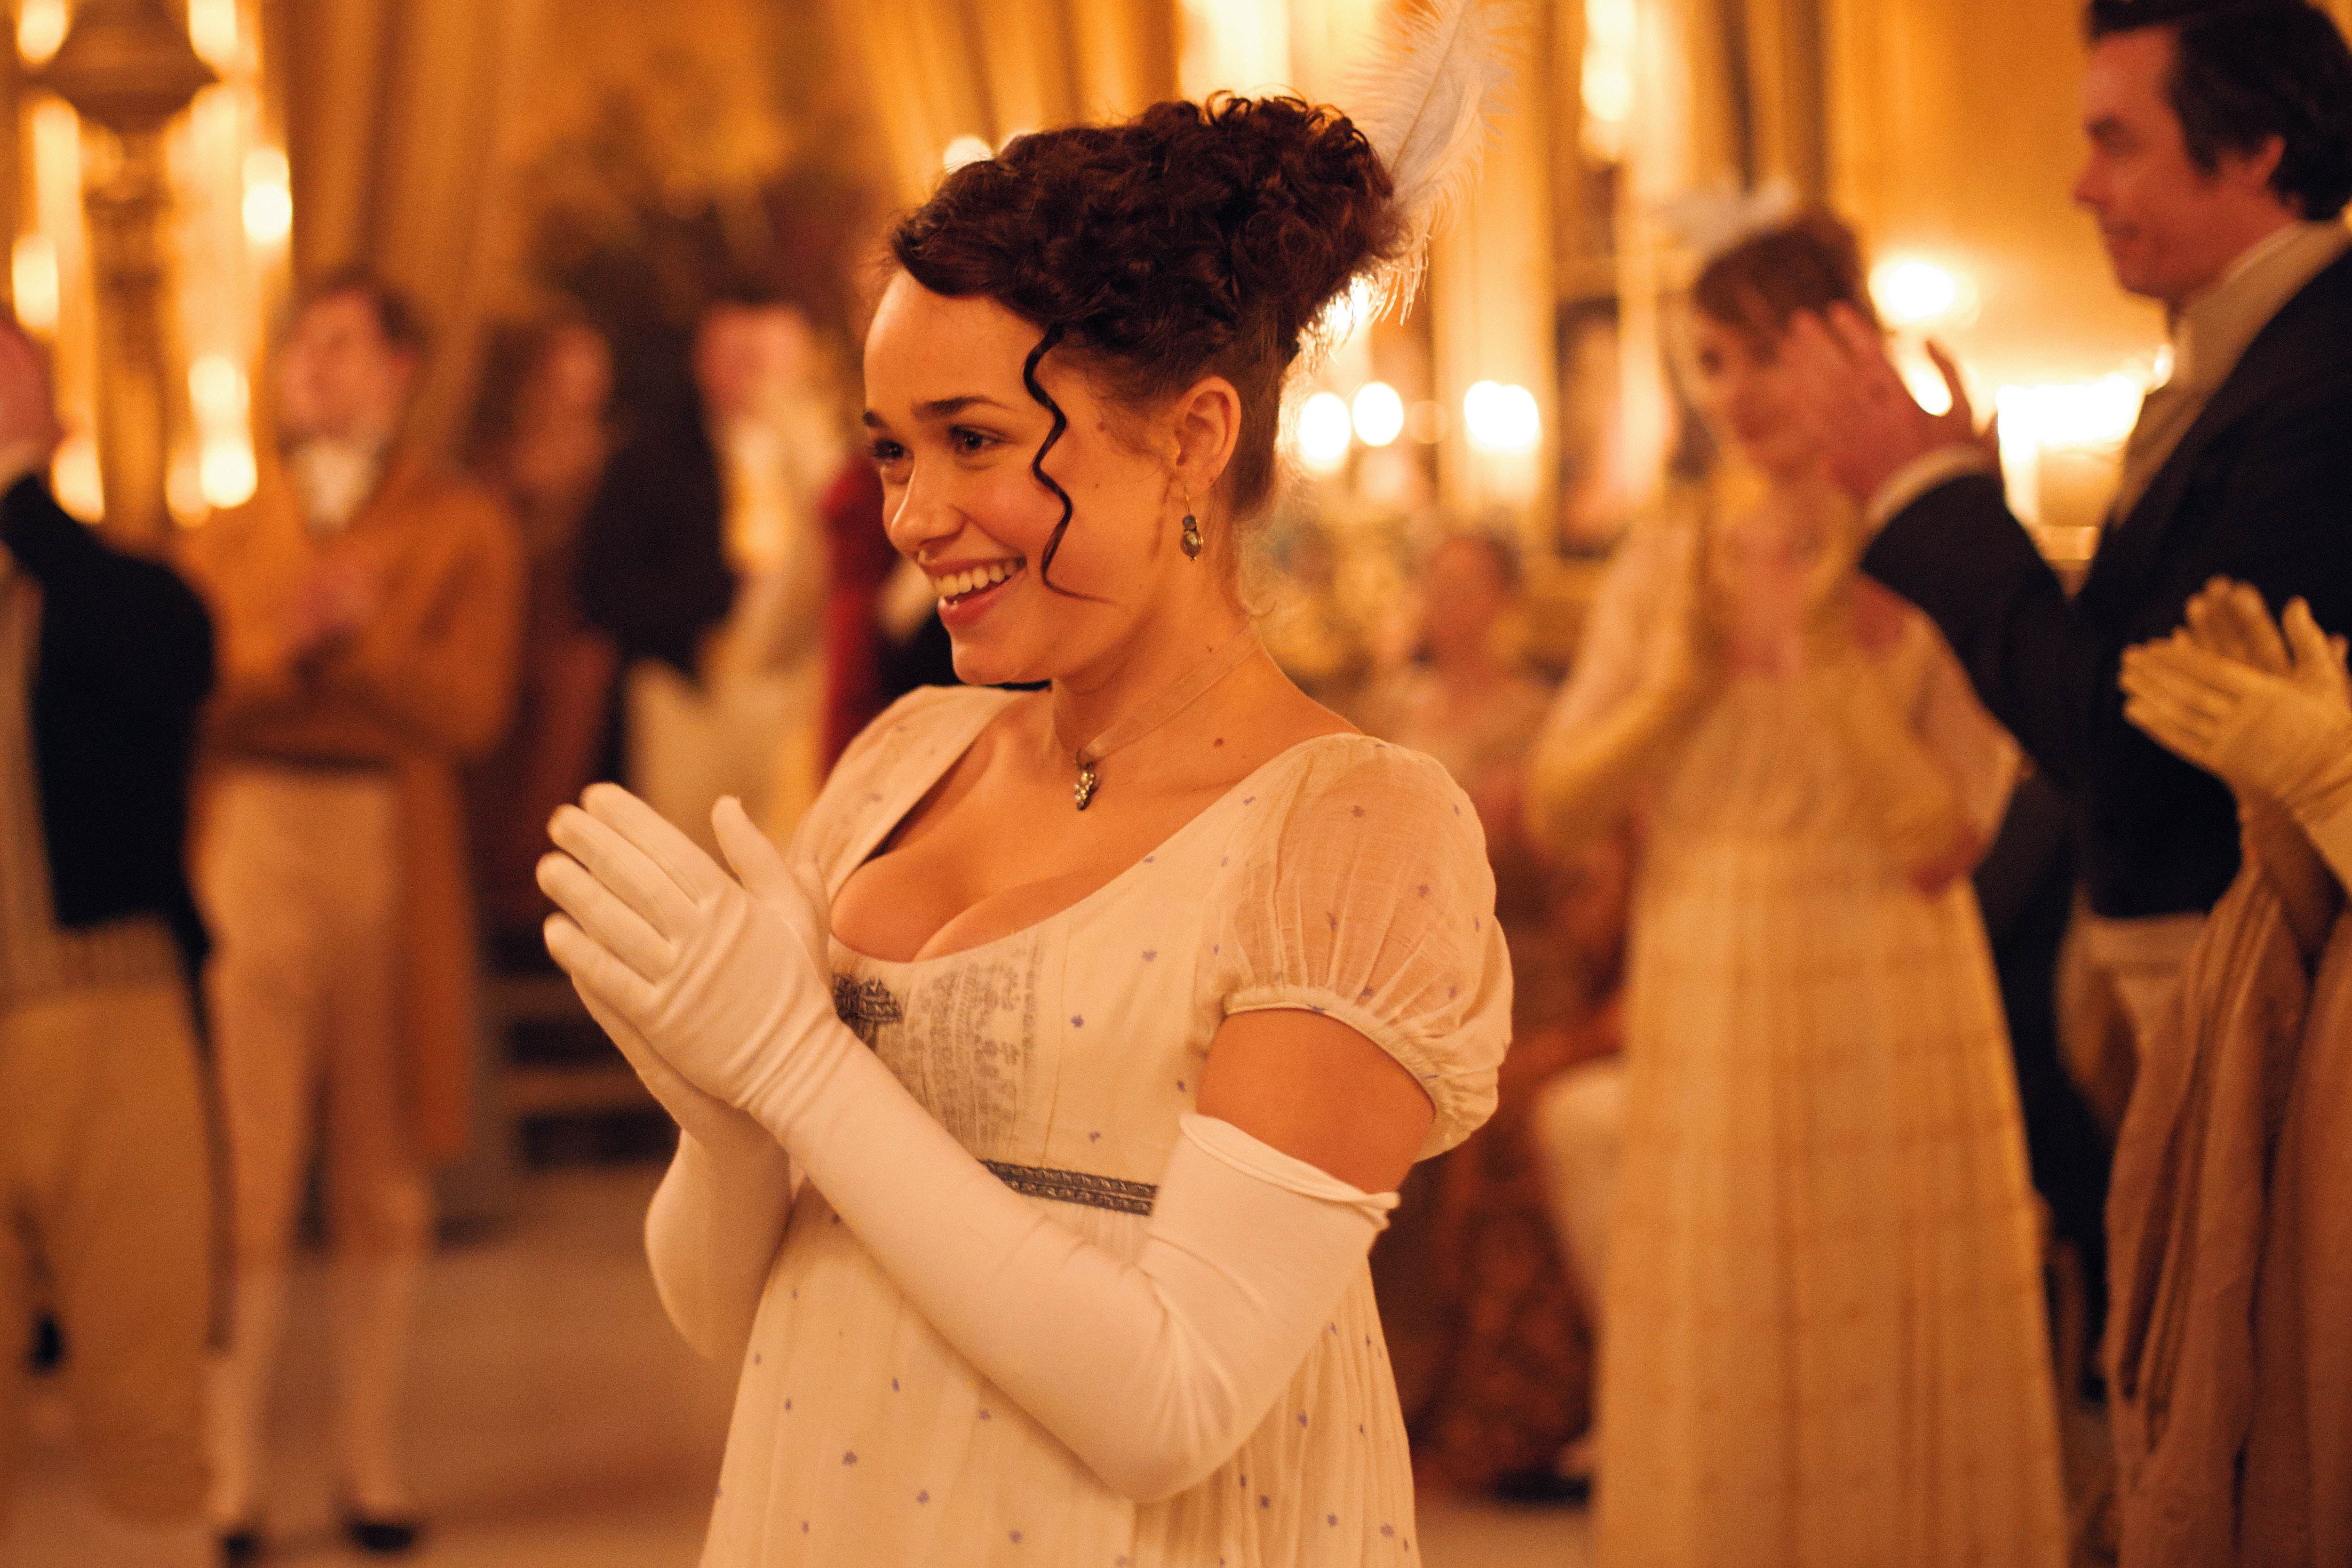 Rose Wiliams as Charlotte Heywood at a ball and clapping in 'Sanditon'